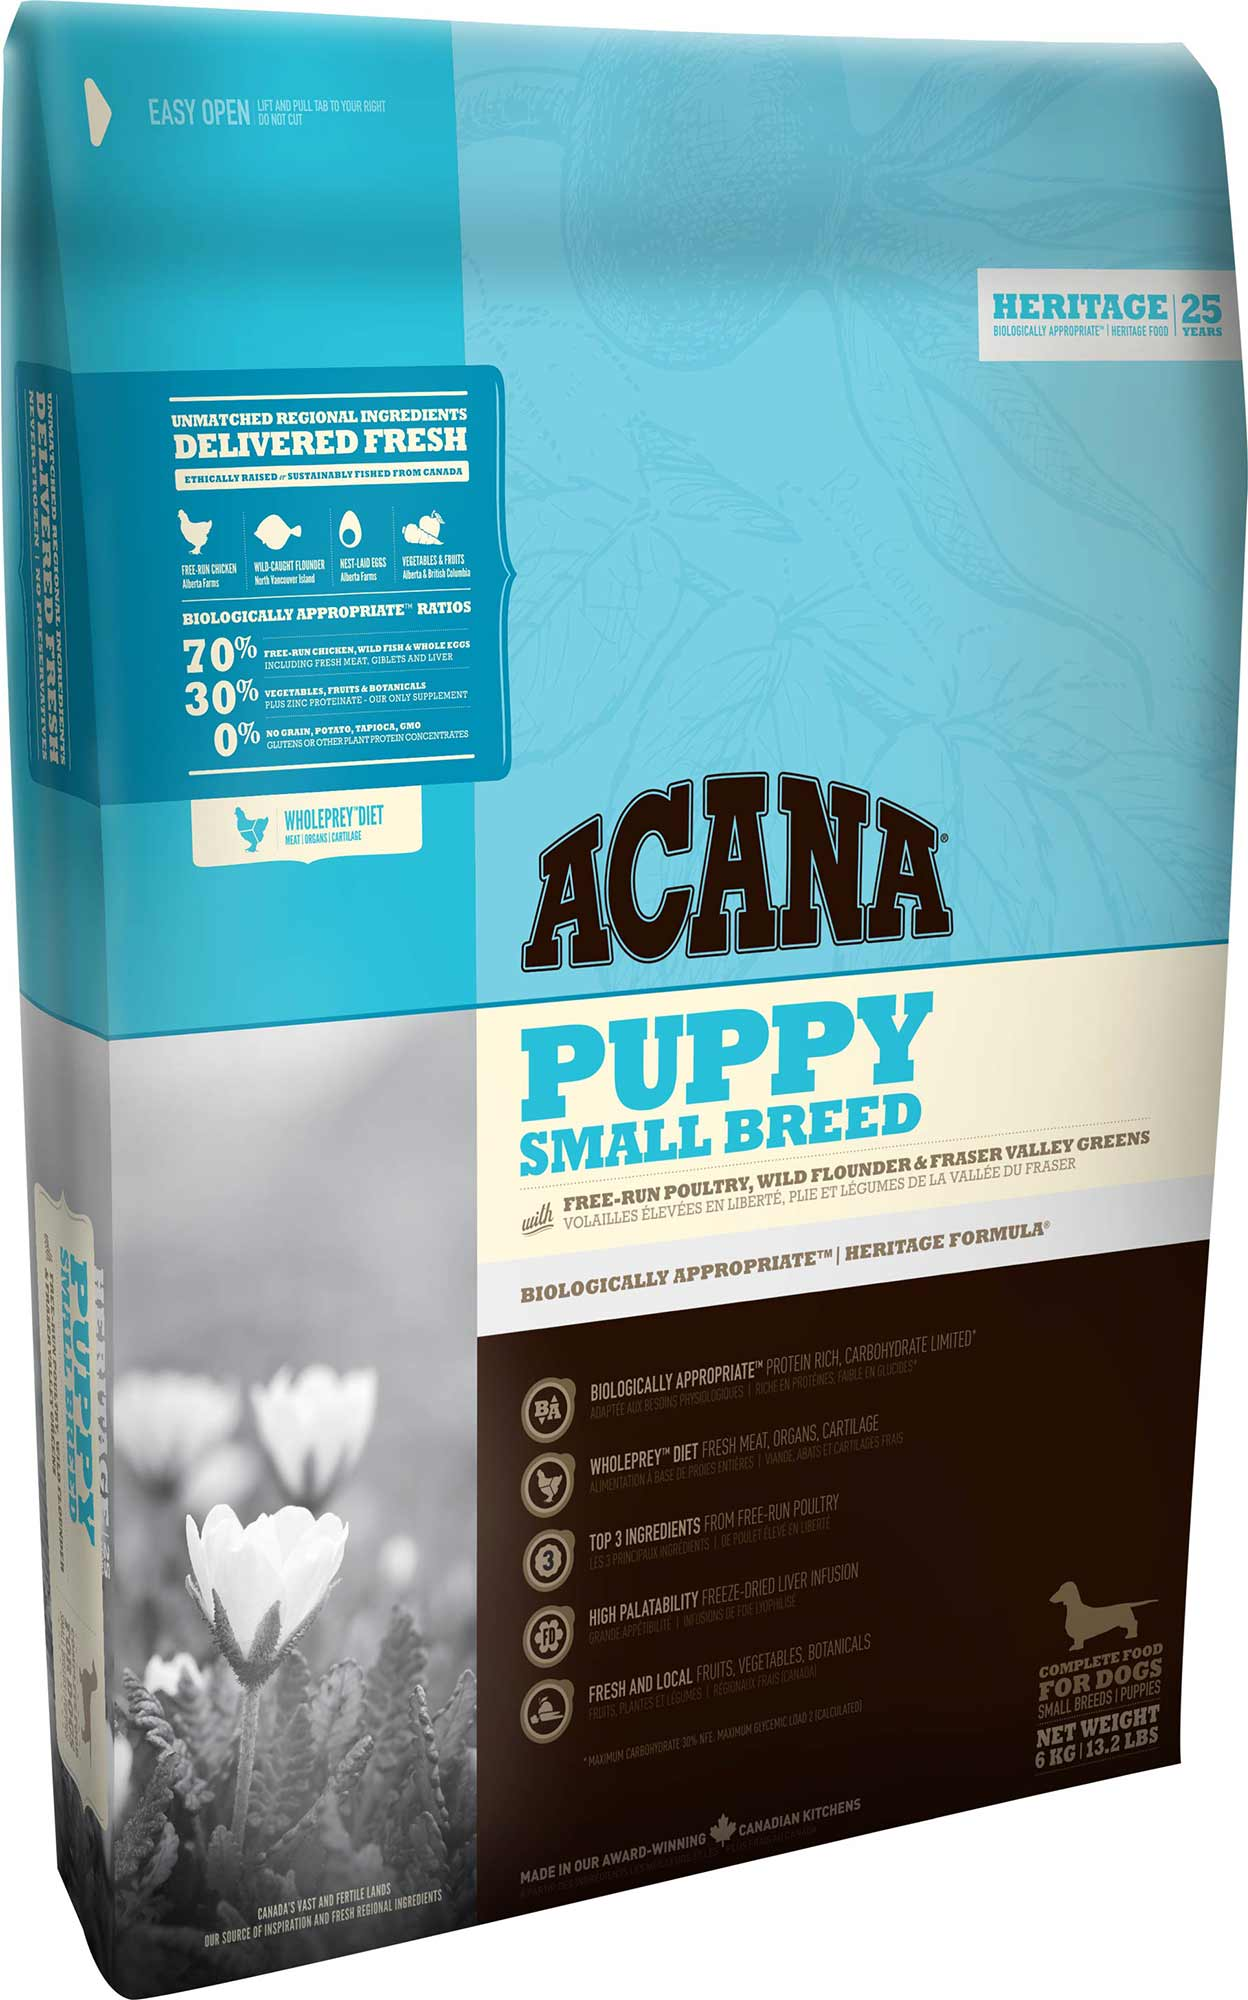 ACANA Heritage Dog Puppy Small Breed 2 kg